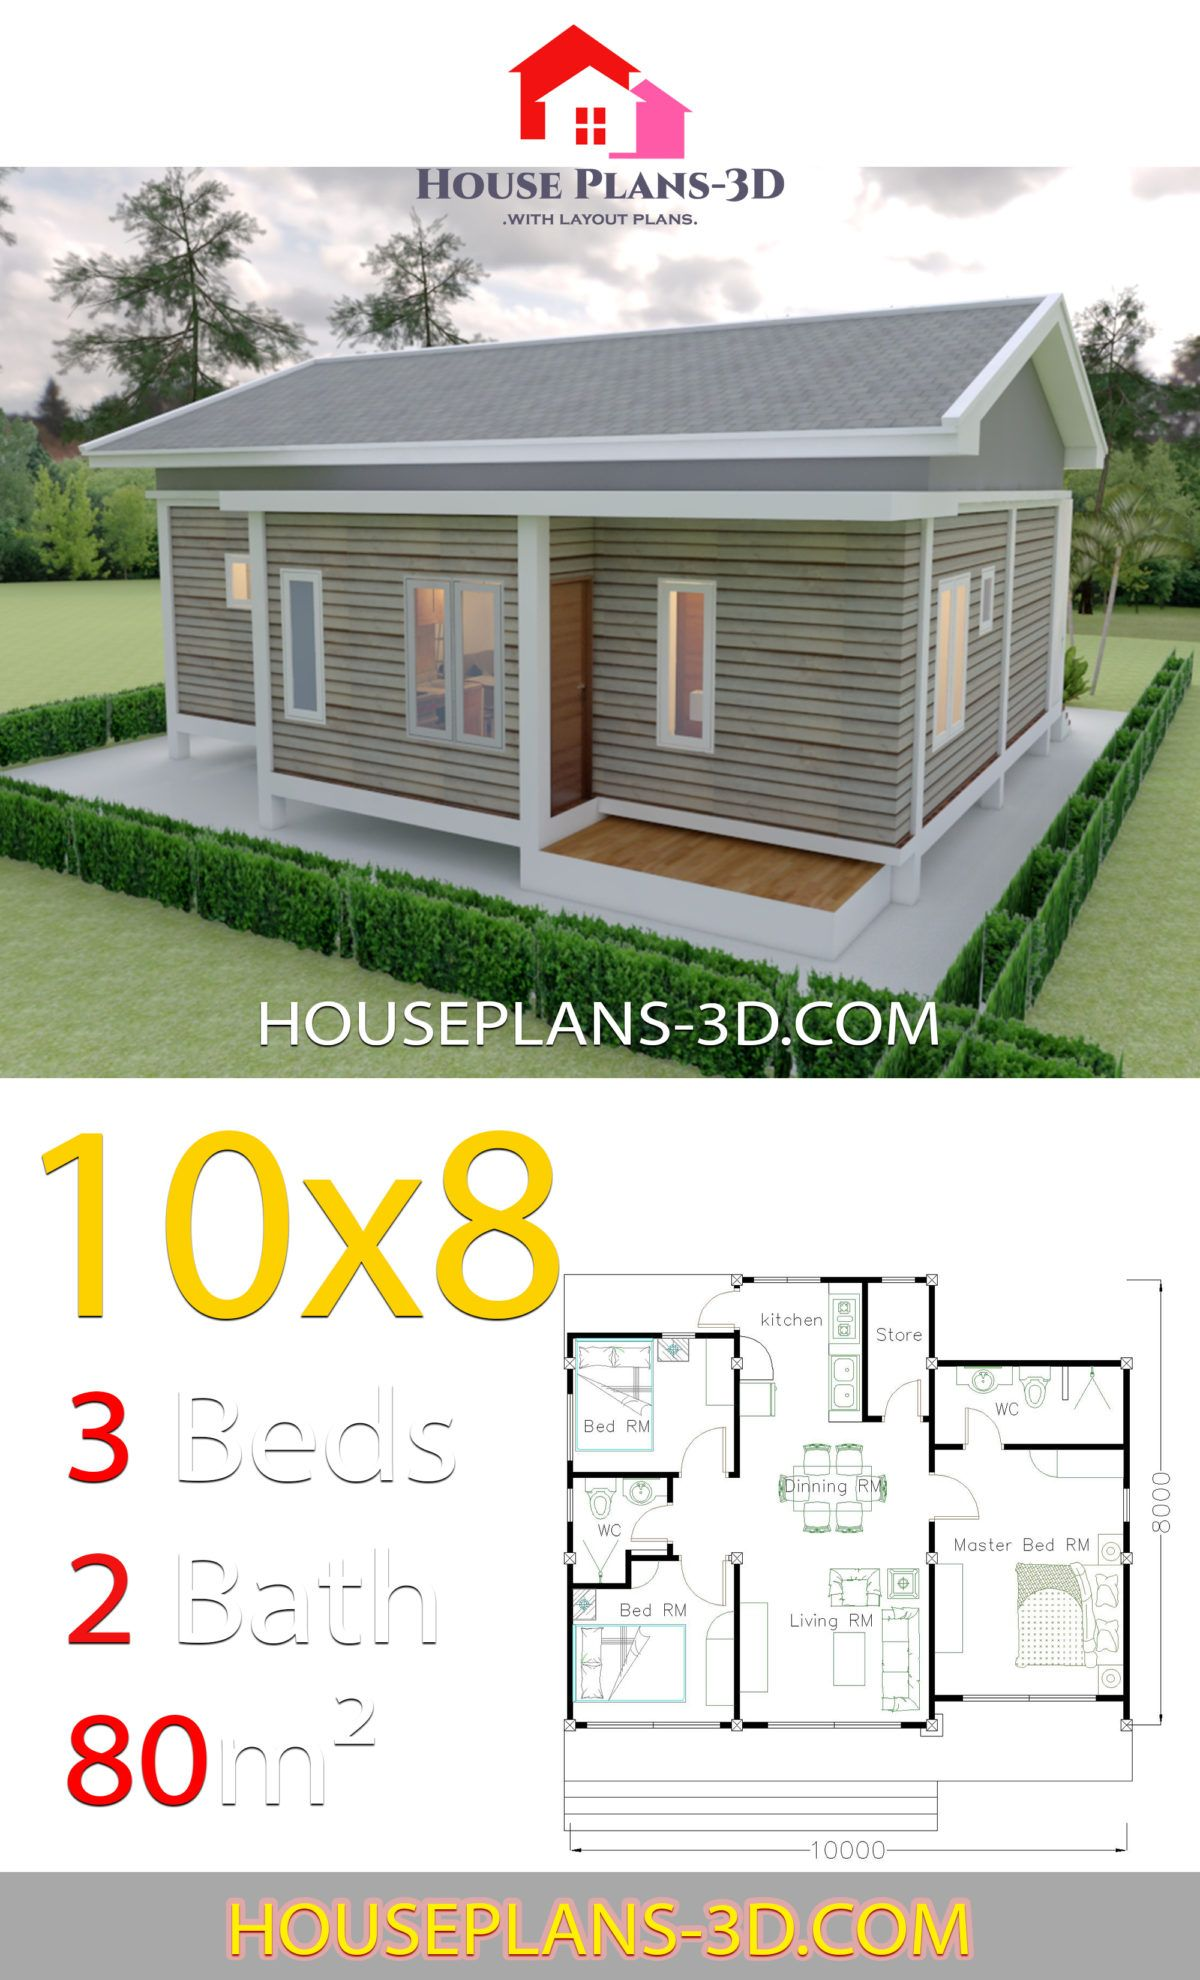 House Plans 10x8 With 3 Bedrooms Gable Roof House Plans 3d Gable Roof House House Plans Small House Design Plans